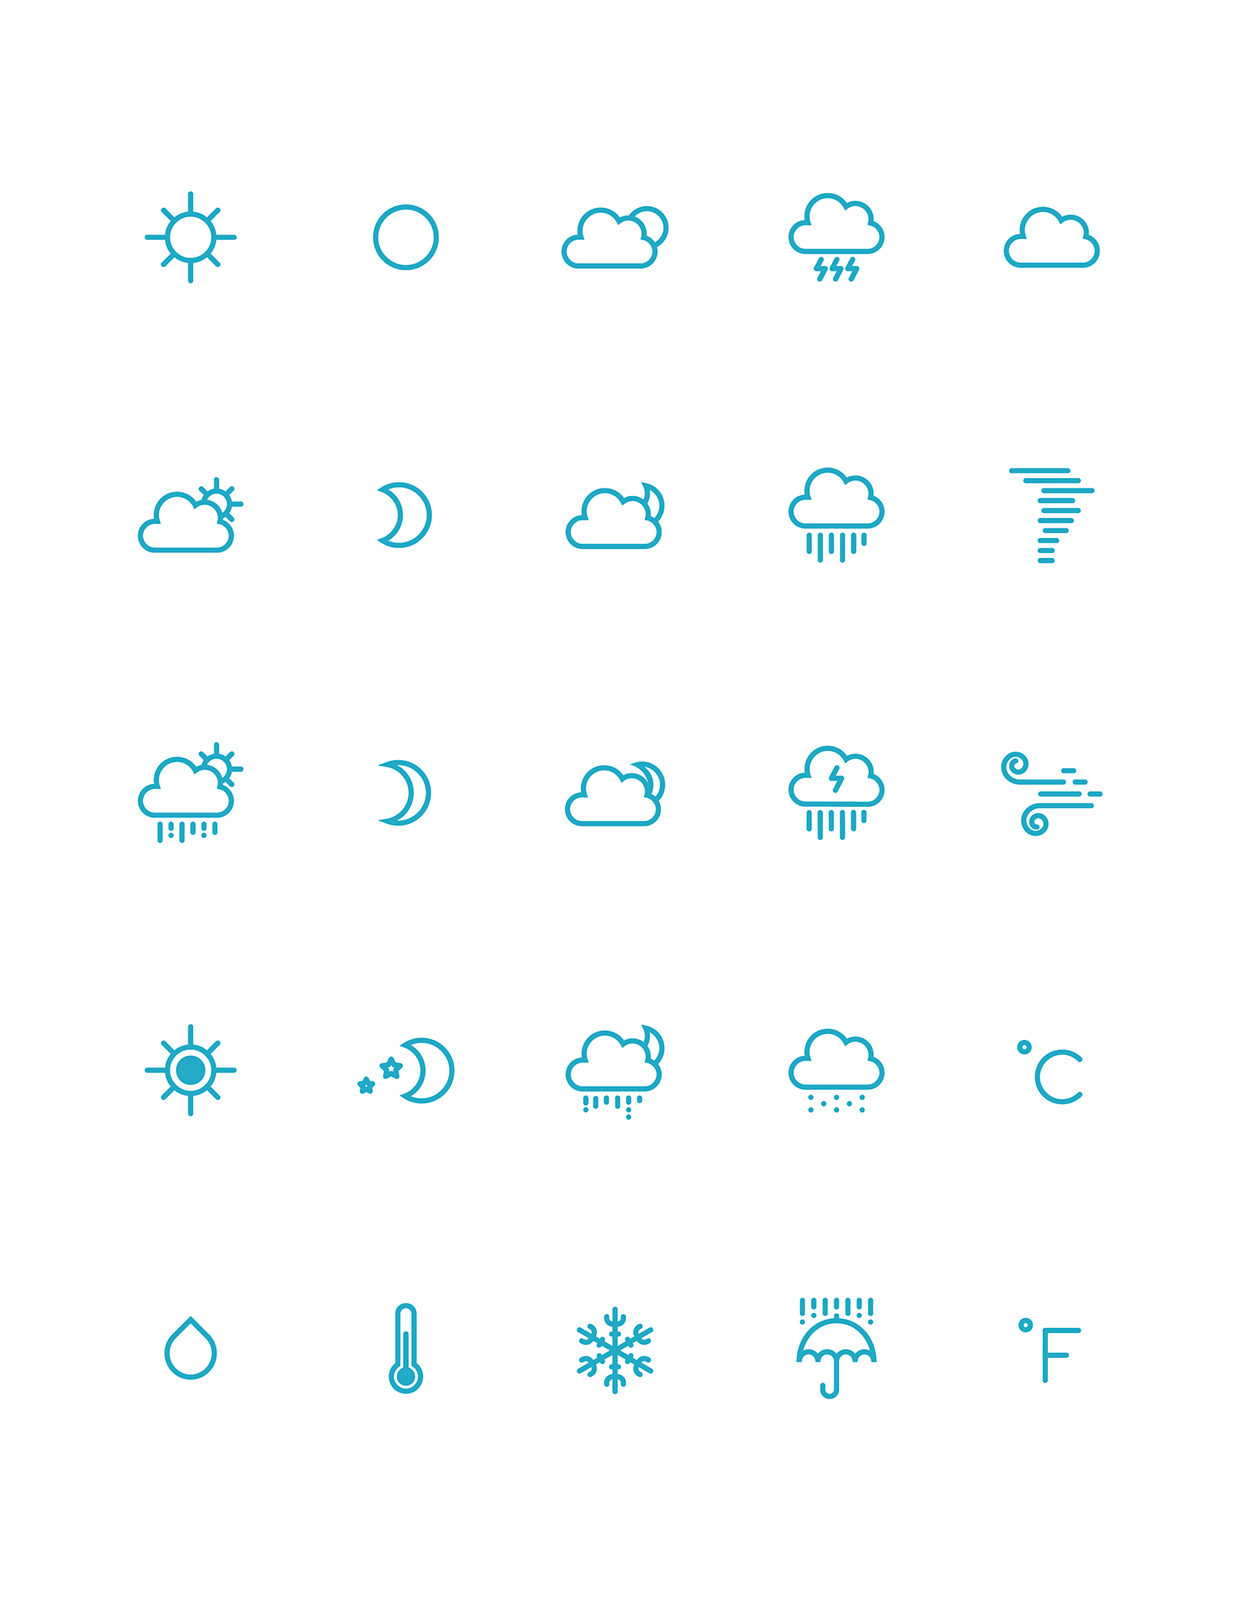 Free weather icons ai free graphic design icon outline weather icons on behance biocorpaavc Image collections